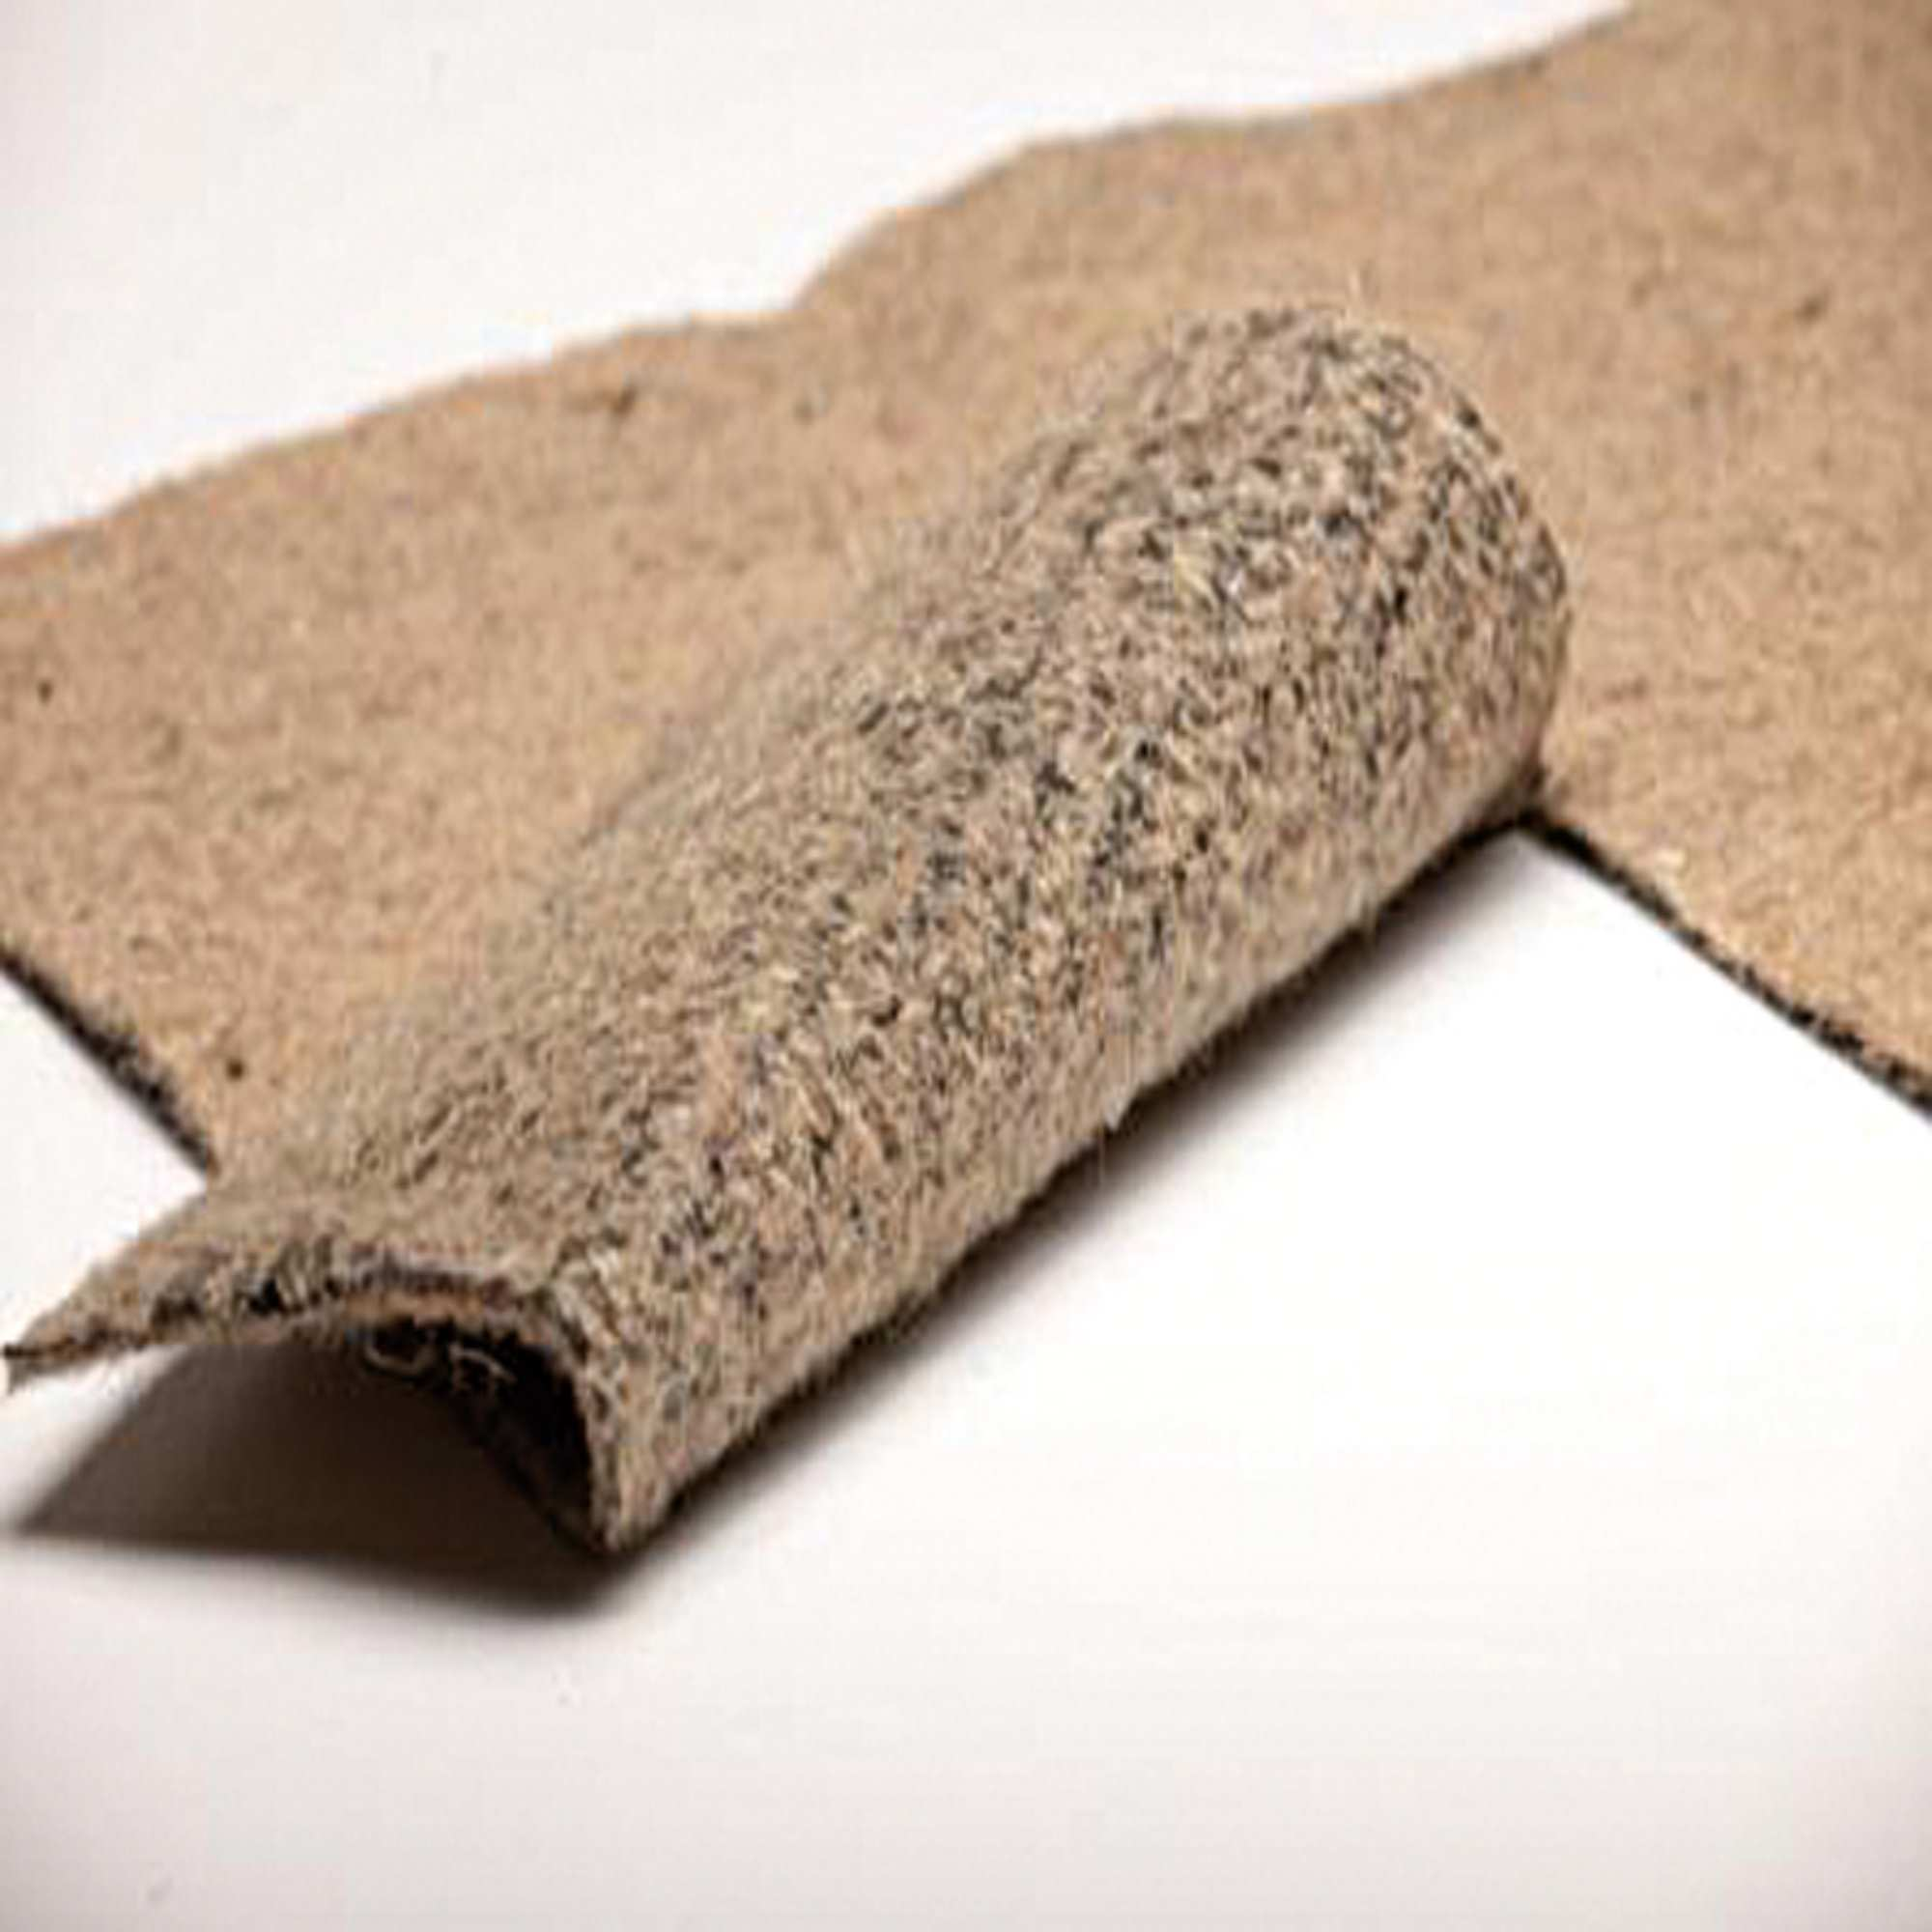 WEED CONTROL FABRIC DEGRADABLE SQUARE SPATS 450g ECOMAT 50CM x 50CM